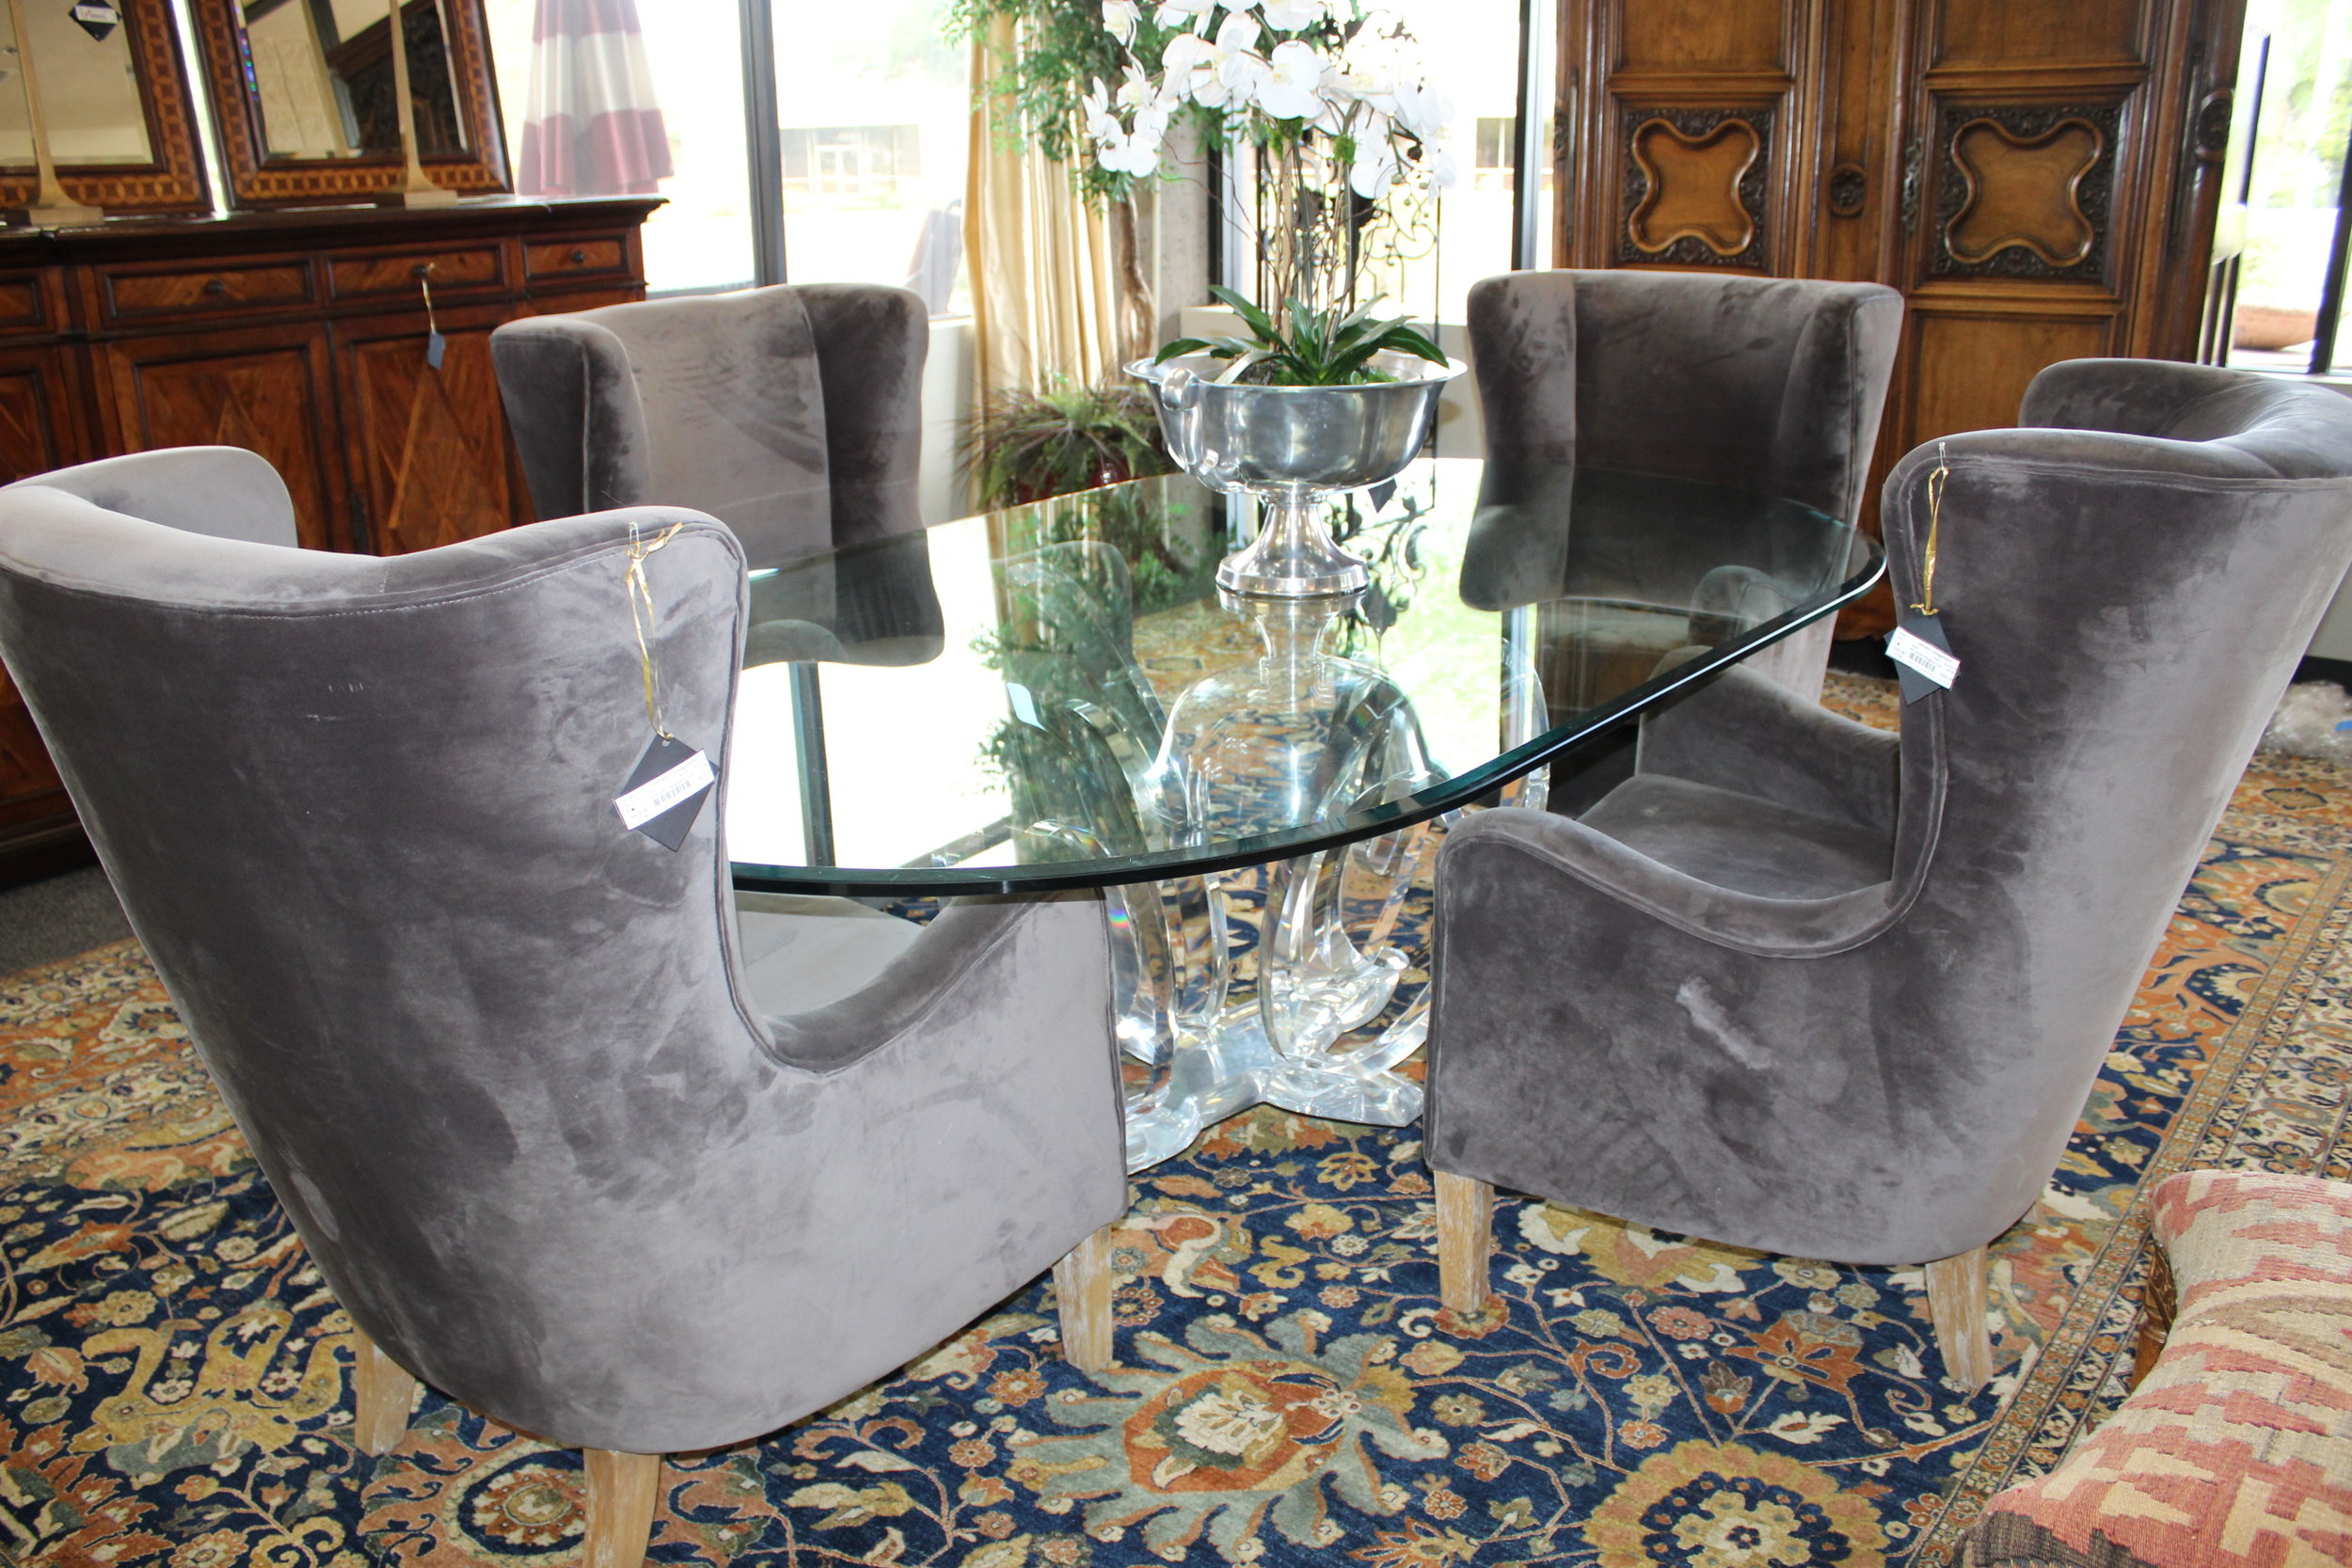 Recollection From the Future Dining Table by Mikhail Loznikov & Set of 4 Smoked Wingback Chairs